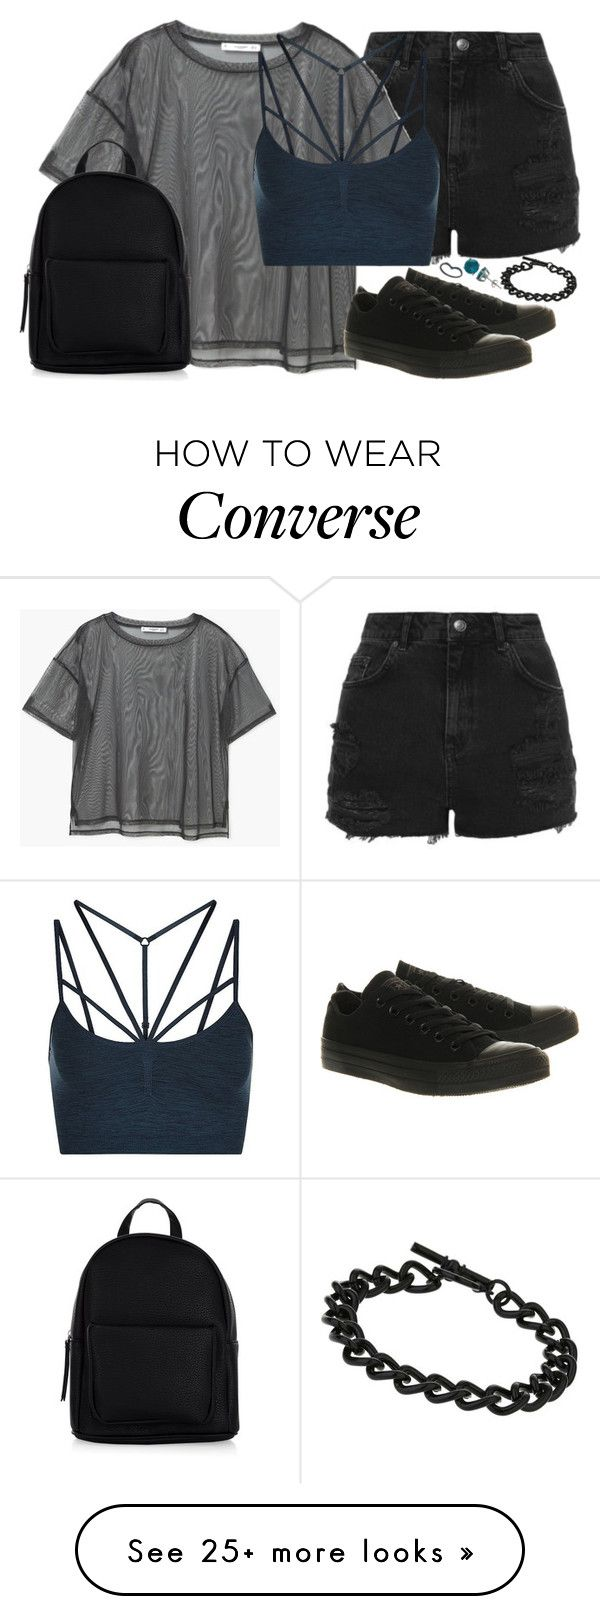 """When you said it was over you shot right through my heart.."" by ferny117 on Polyvore featuring Topshop, MANGO, Sweaty Betty, Converse, BaubleBar, Miss Selfridge, New Look, Luxiro, converse and lyrics"